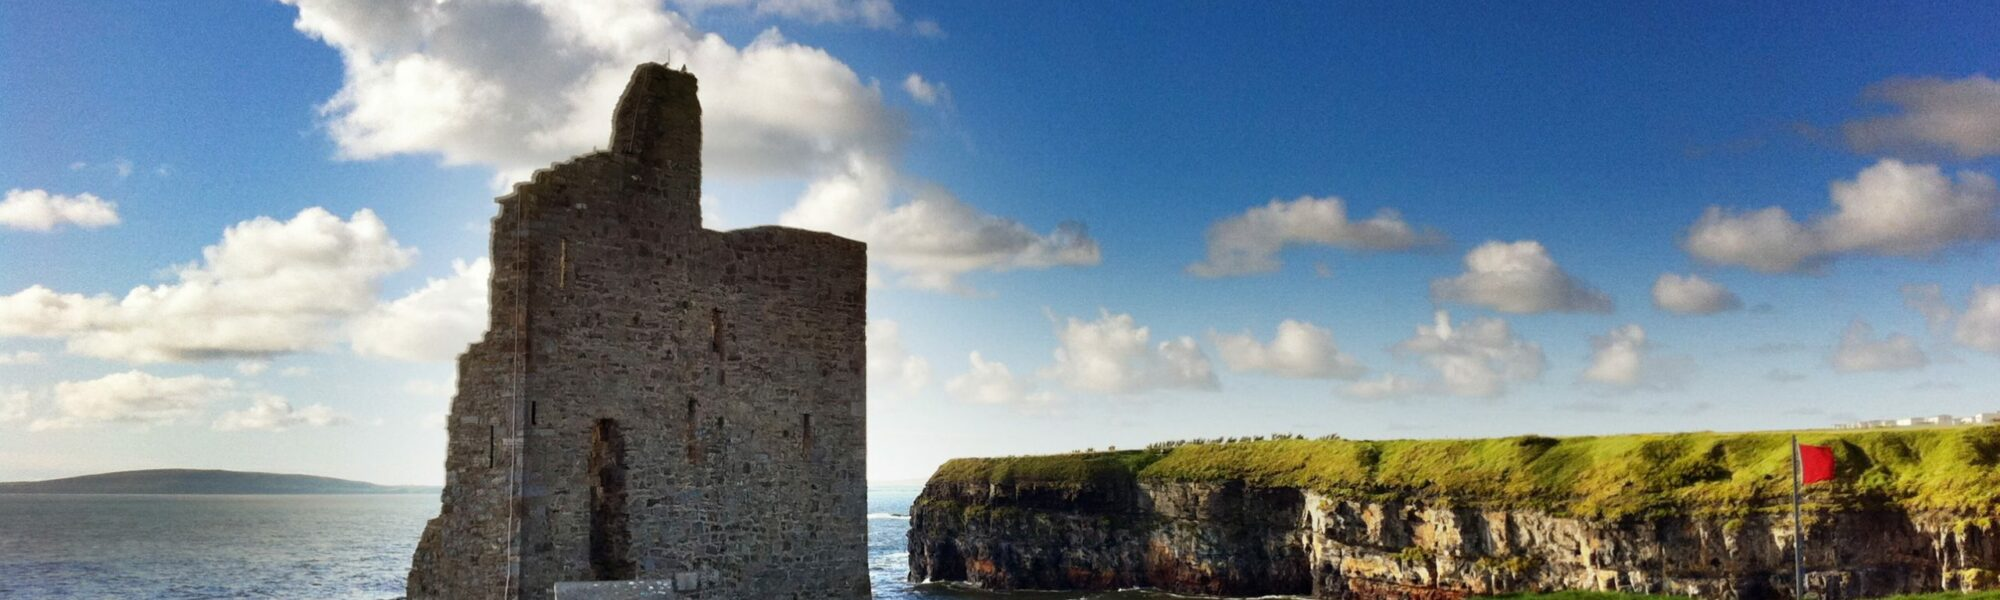 Le Ballybunion Castle - Jeff and Neda Fields - cc